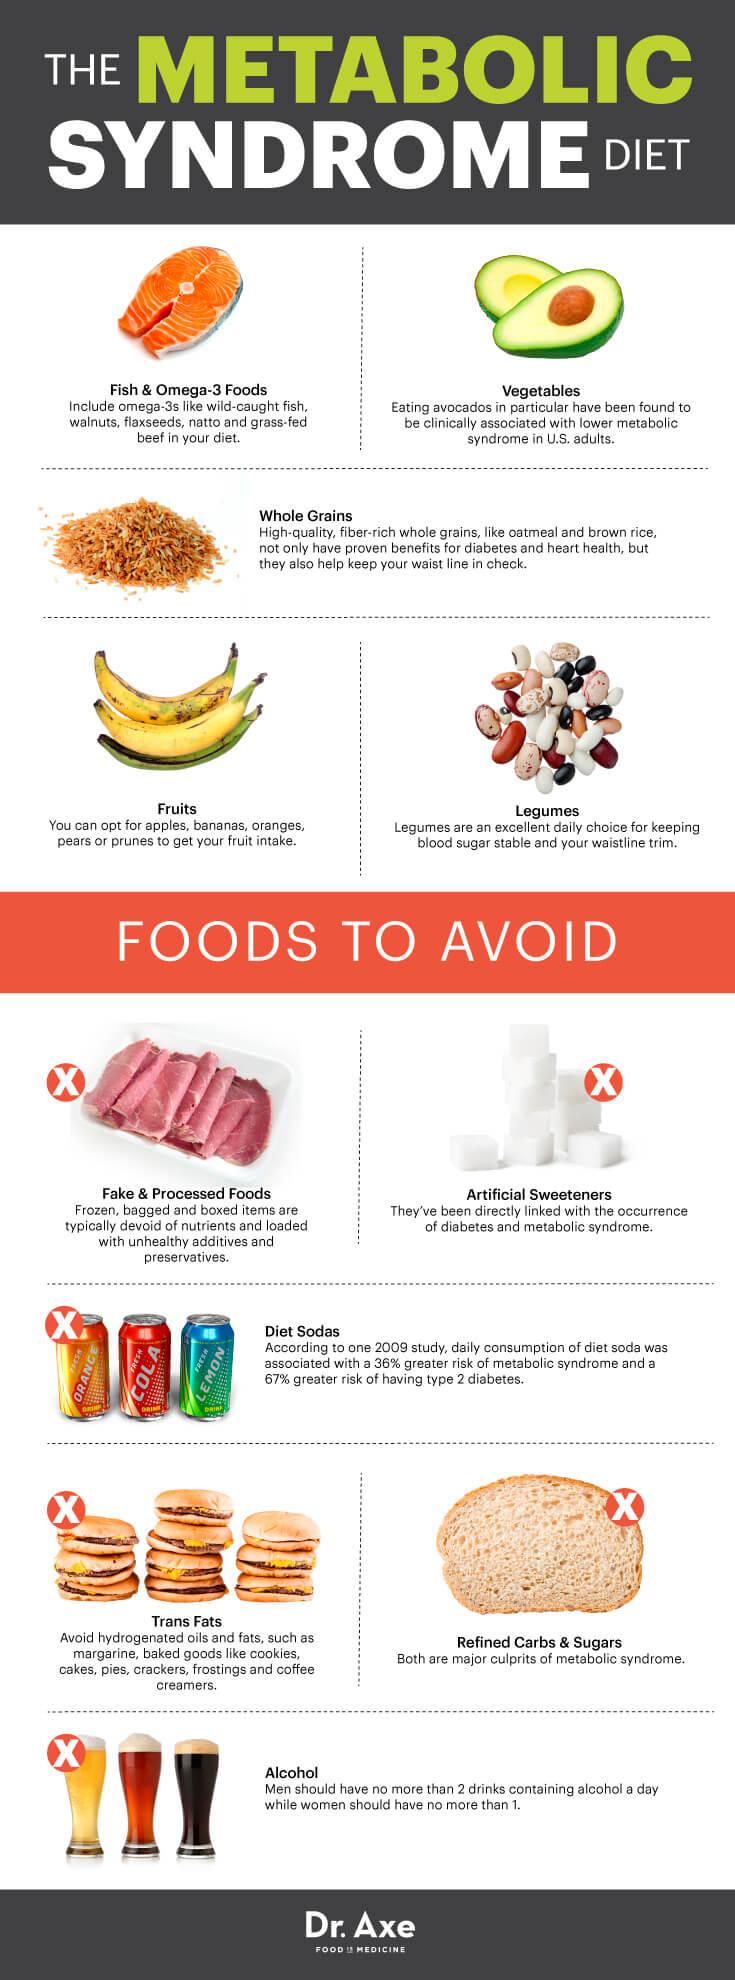 Metabolic syndrome diet - Dr. Axe